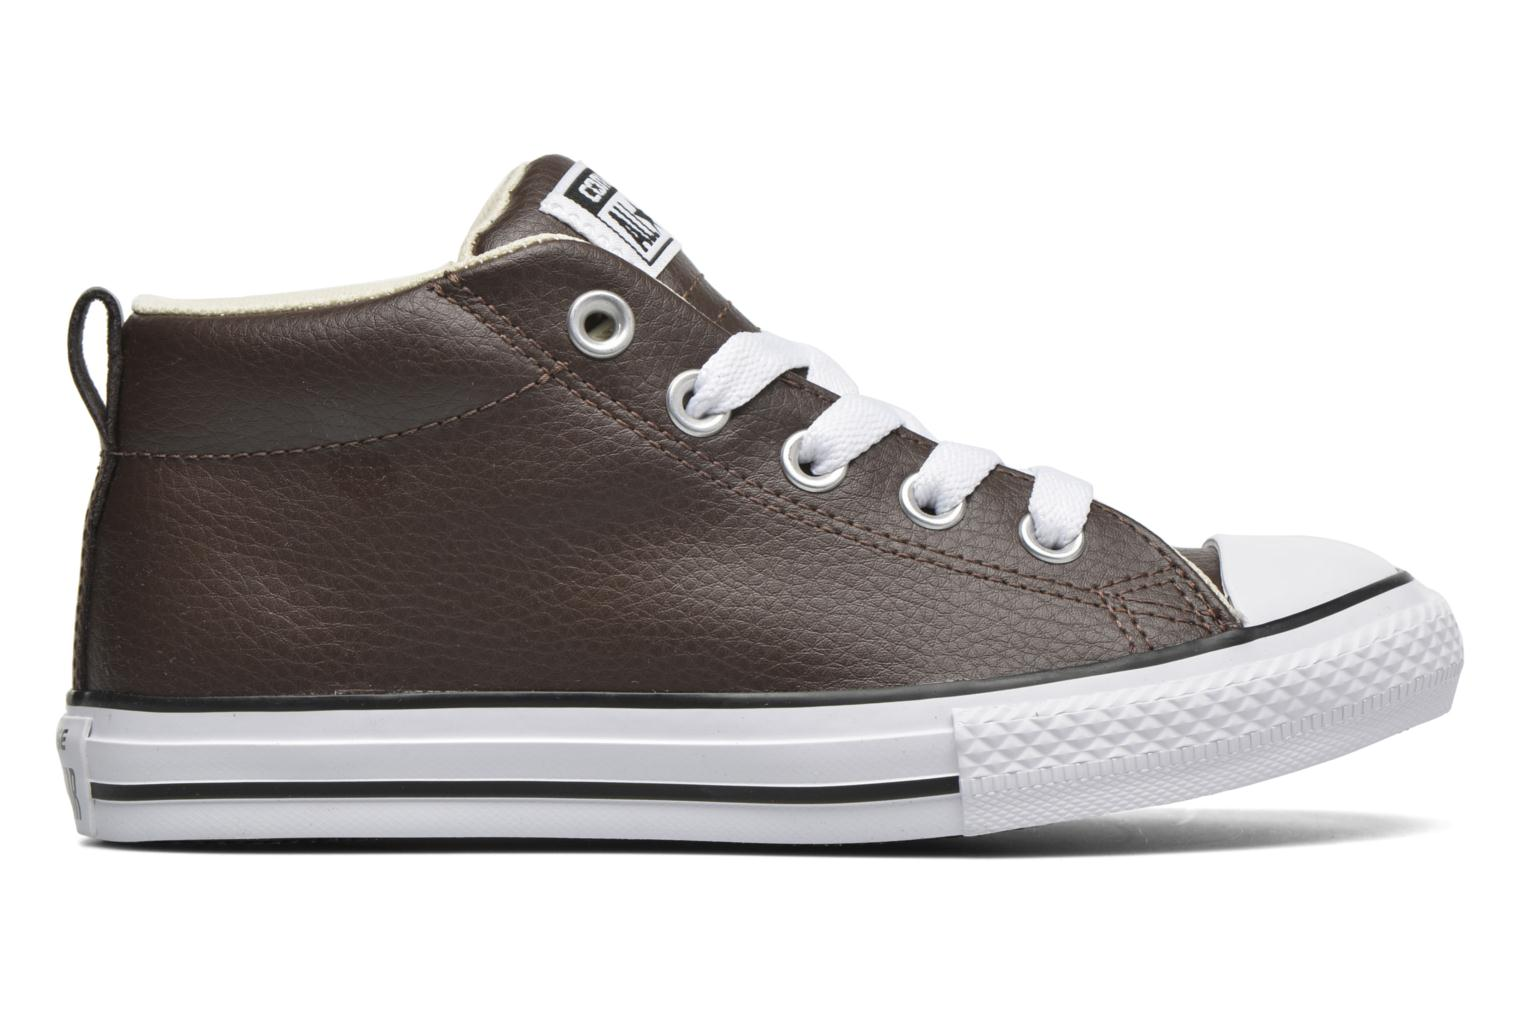 Baskets Converse Chuck Taylor All Star Street Mid Marron vue derrière